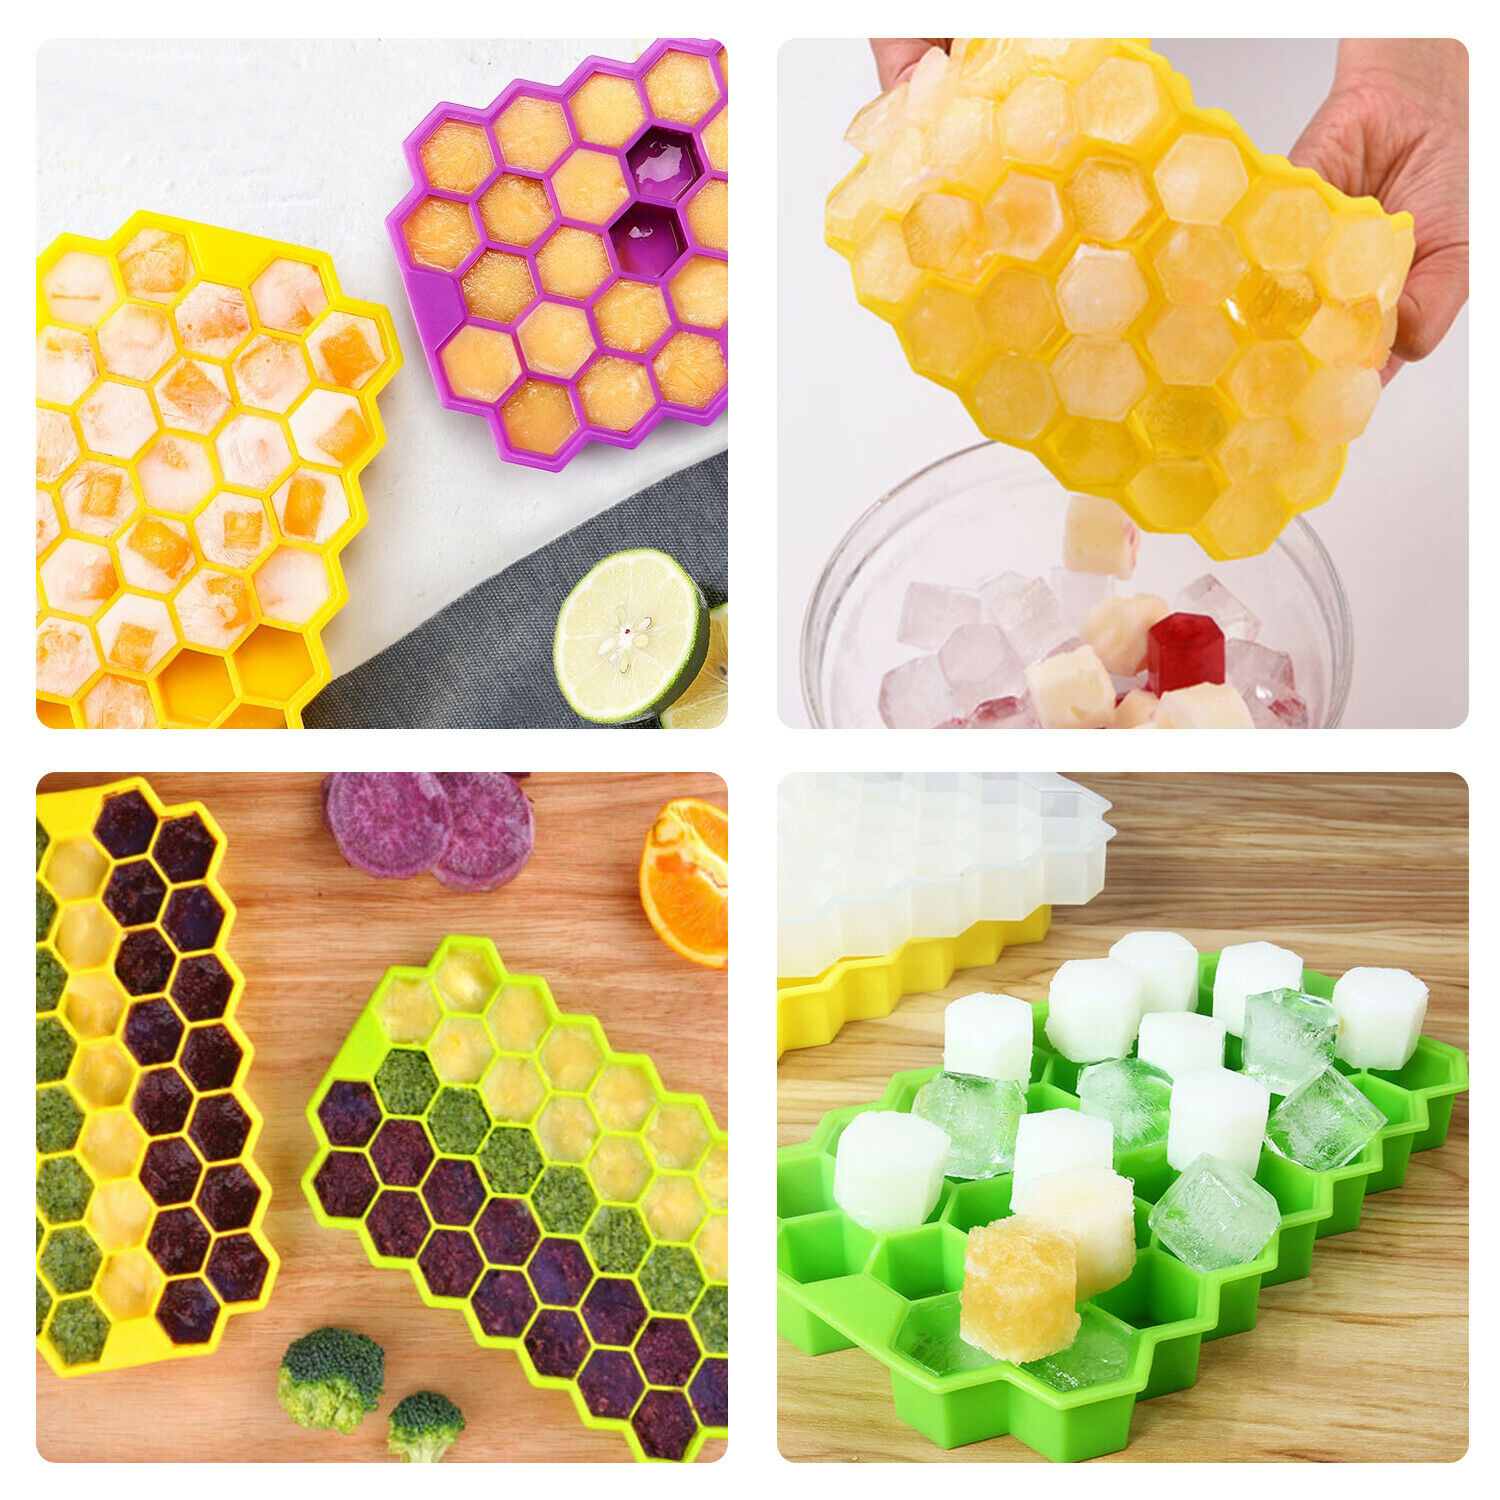 37 Grids Silicone Ice Cube Tray Maker Mold Flexible Cocktails Whiskey Home Bar Bar Tools & Accessories